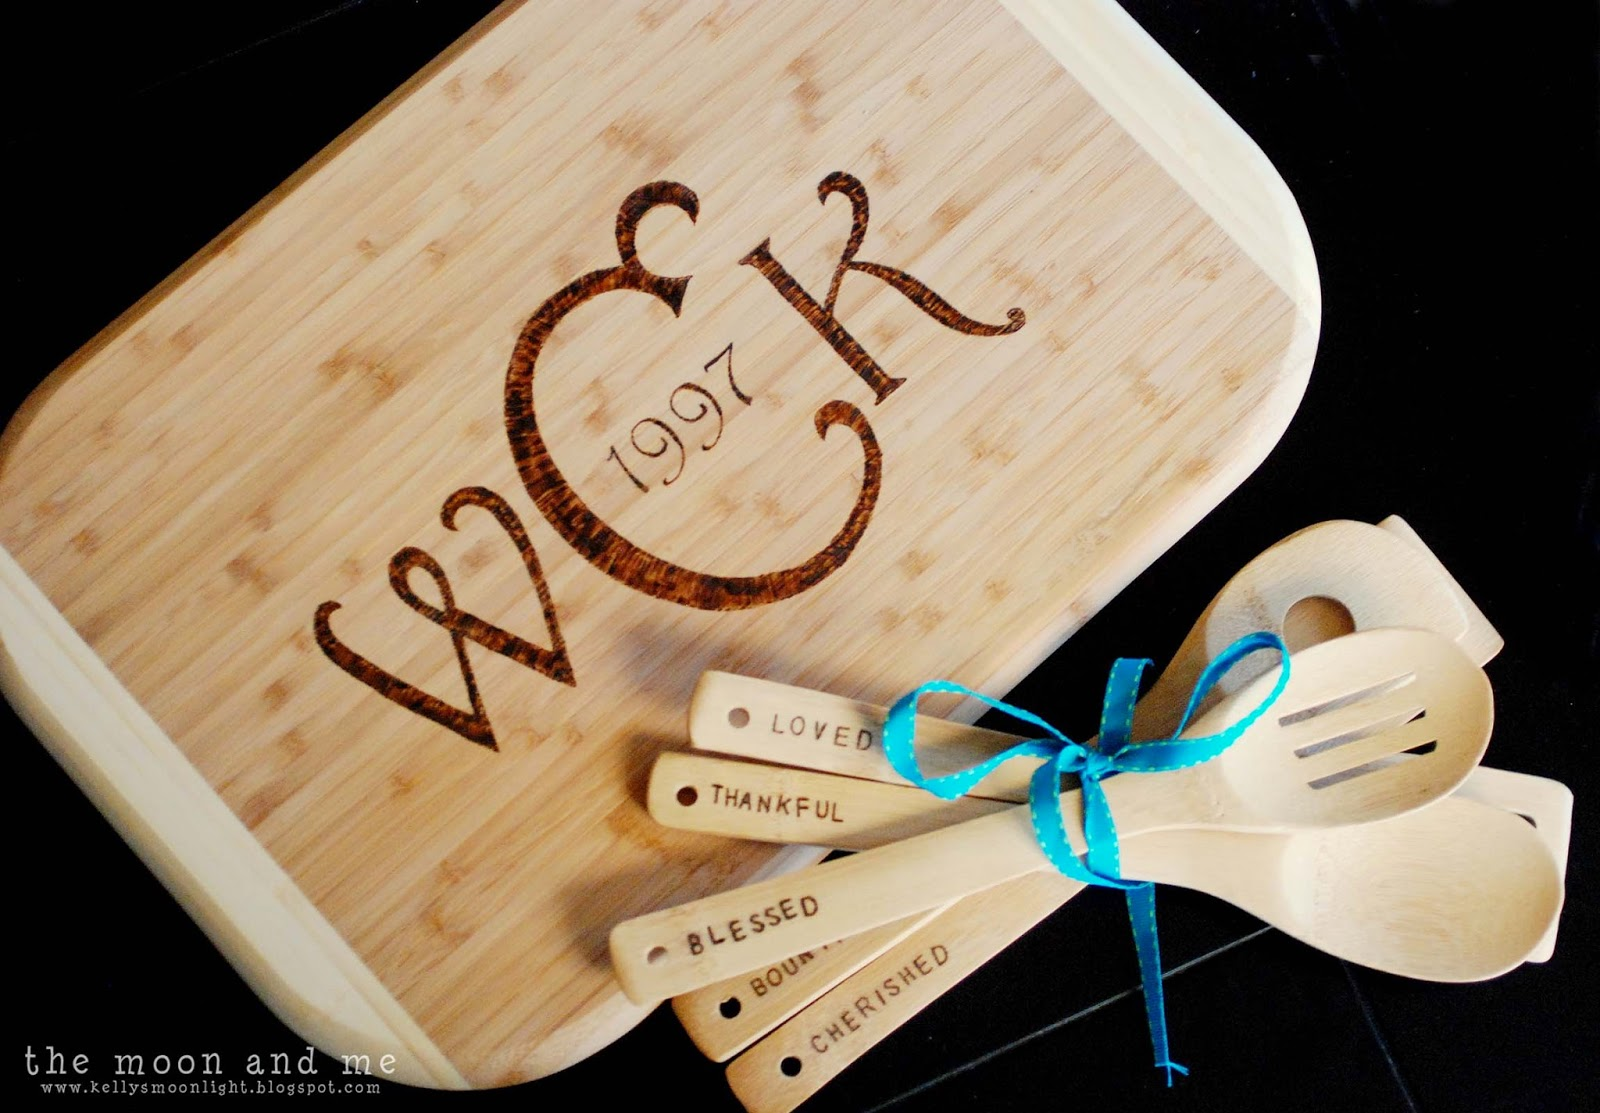 The moon and me diy personalized cutting board solutioingenieria Choice Image